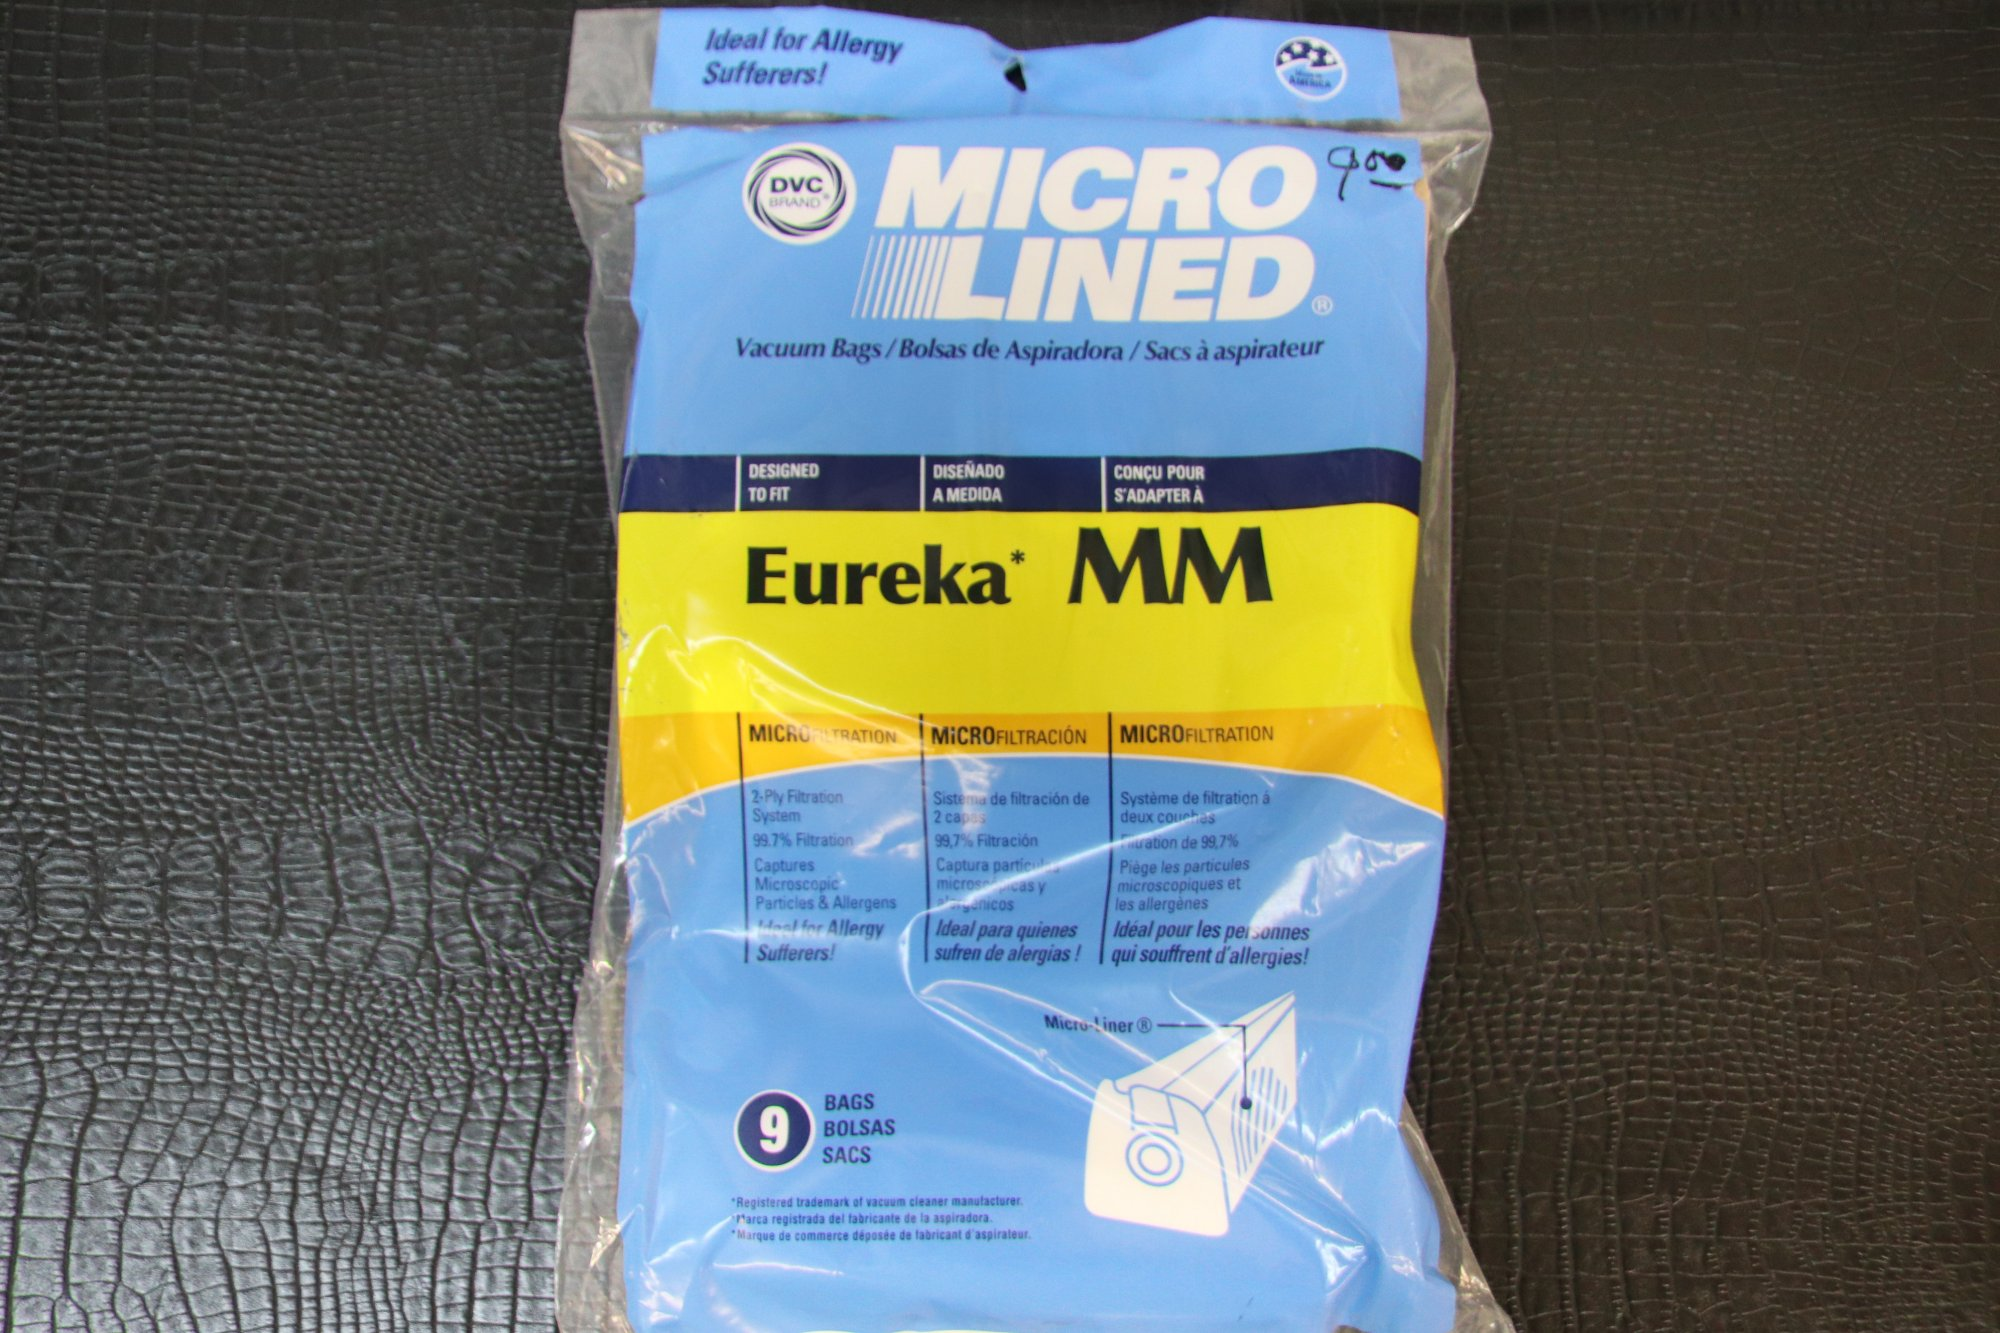 Micro lined Eureka MM Canister 9 pack bags